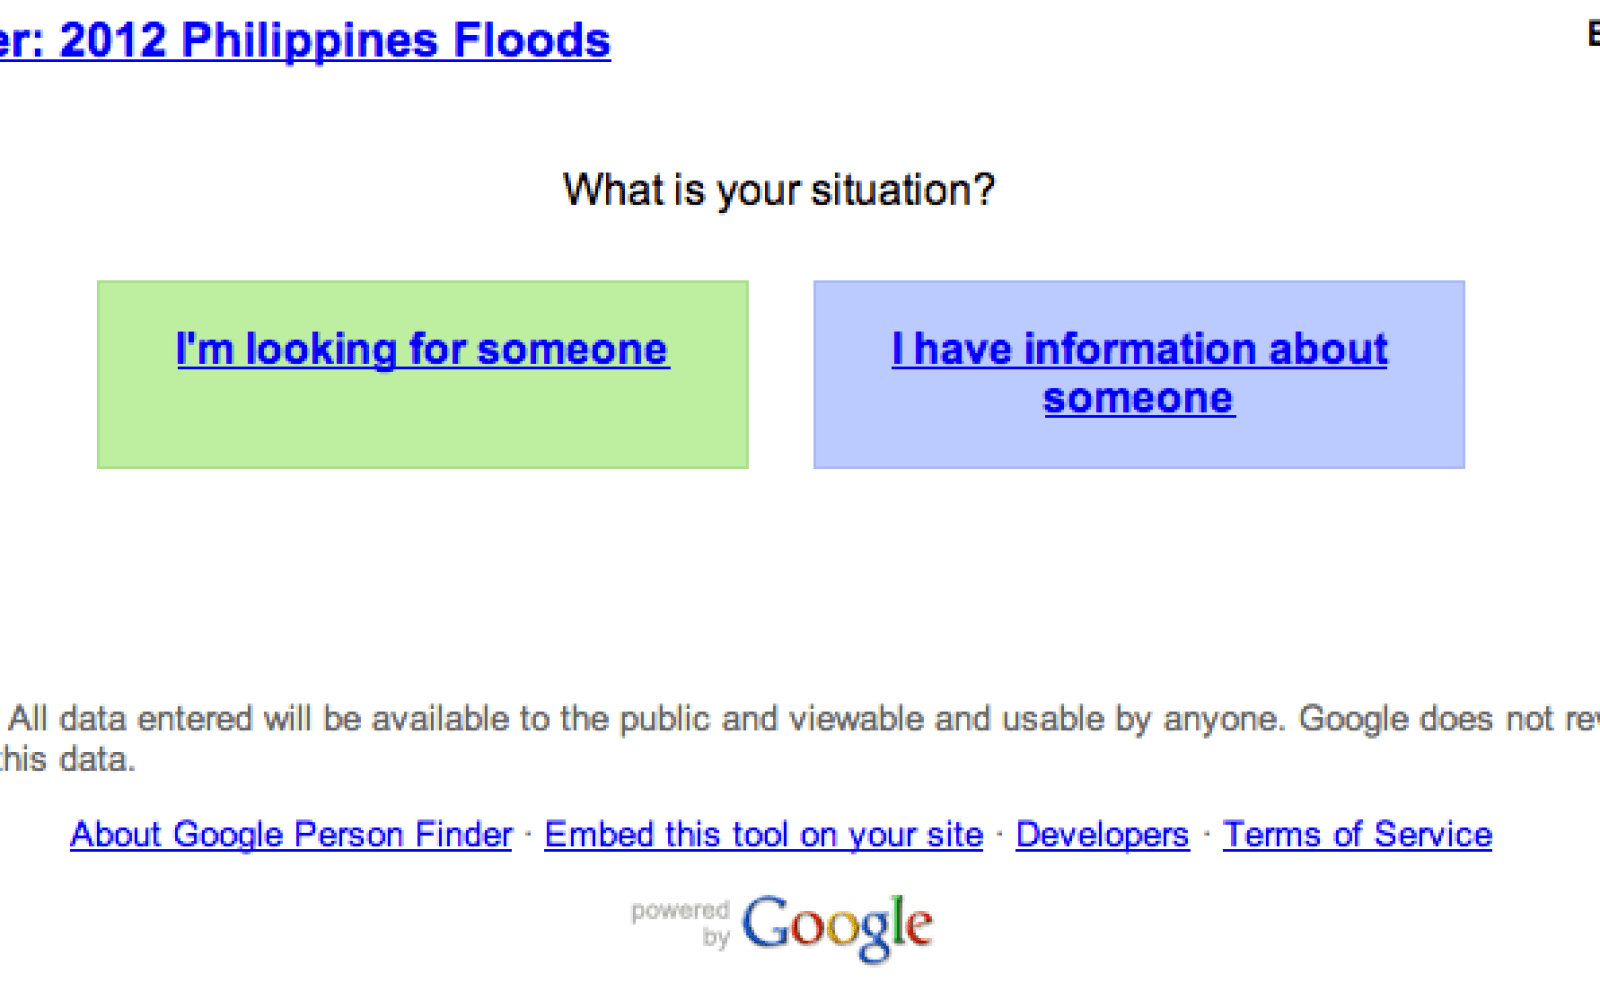 google person finder launches for those affected by 2012 philippines